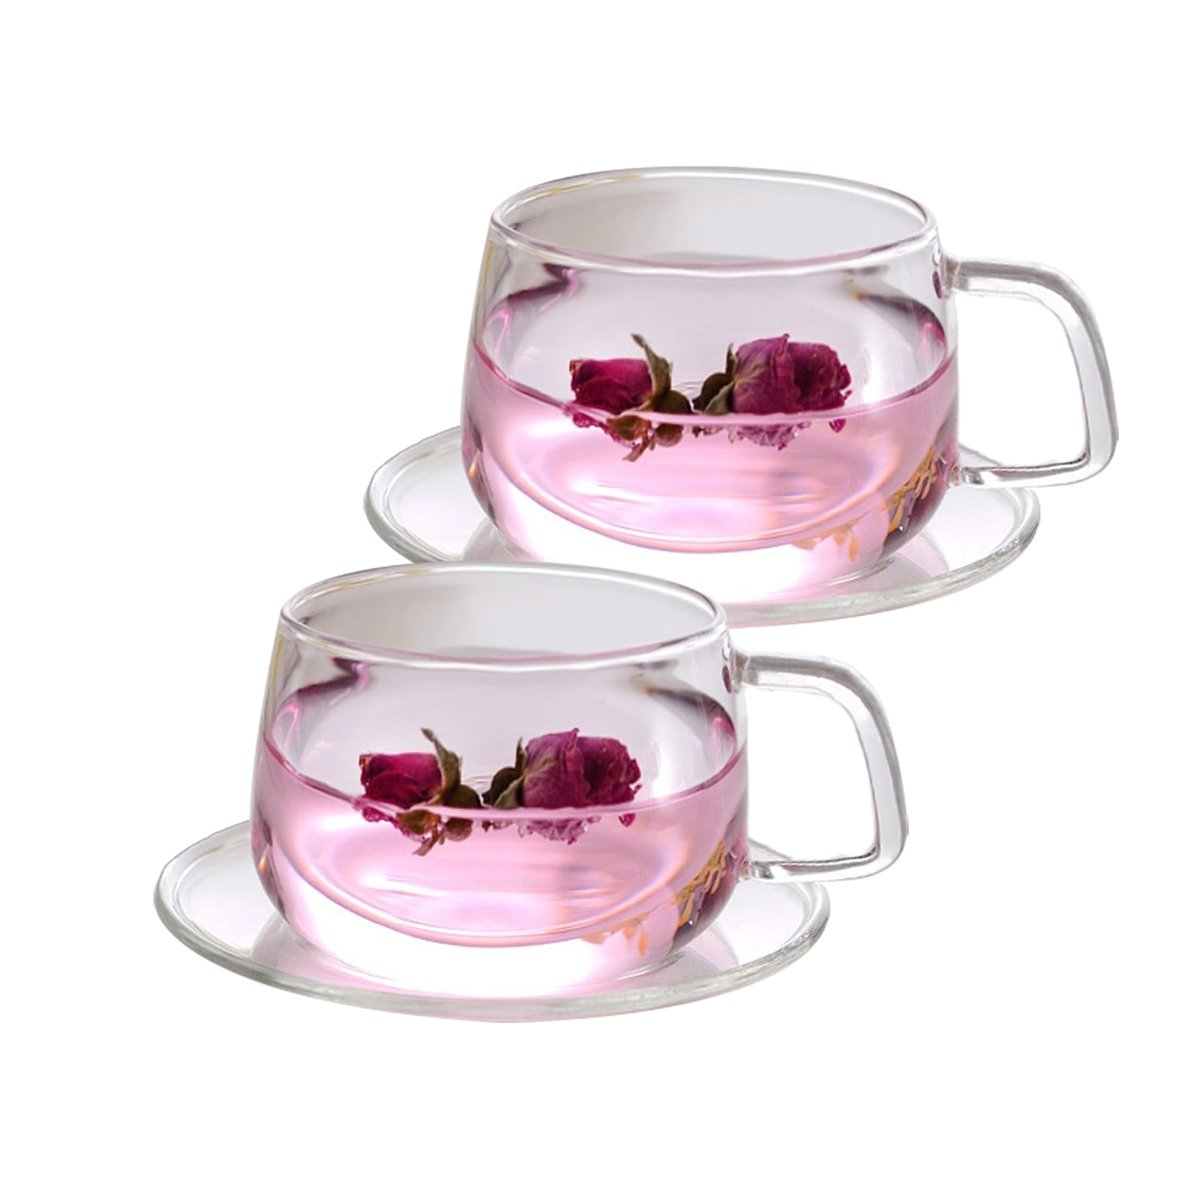 Tosnail 2 Pack 11-Ounce Clear Glass Tea Cups and Saucers Sets